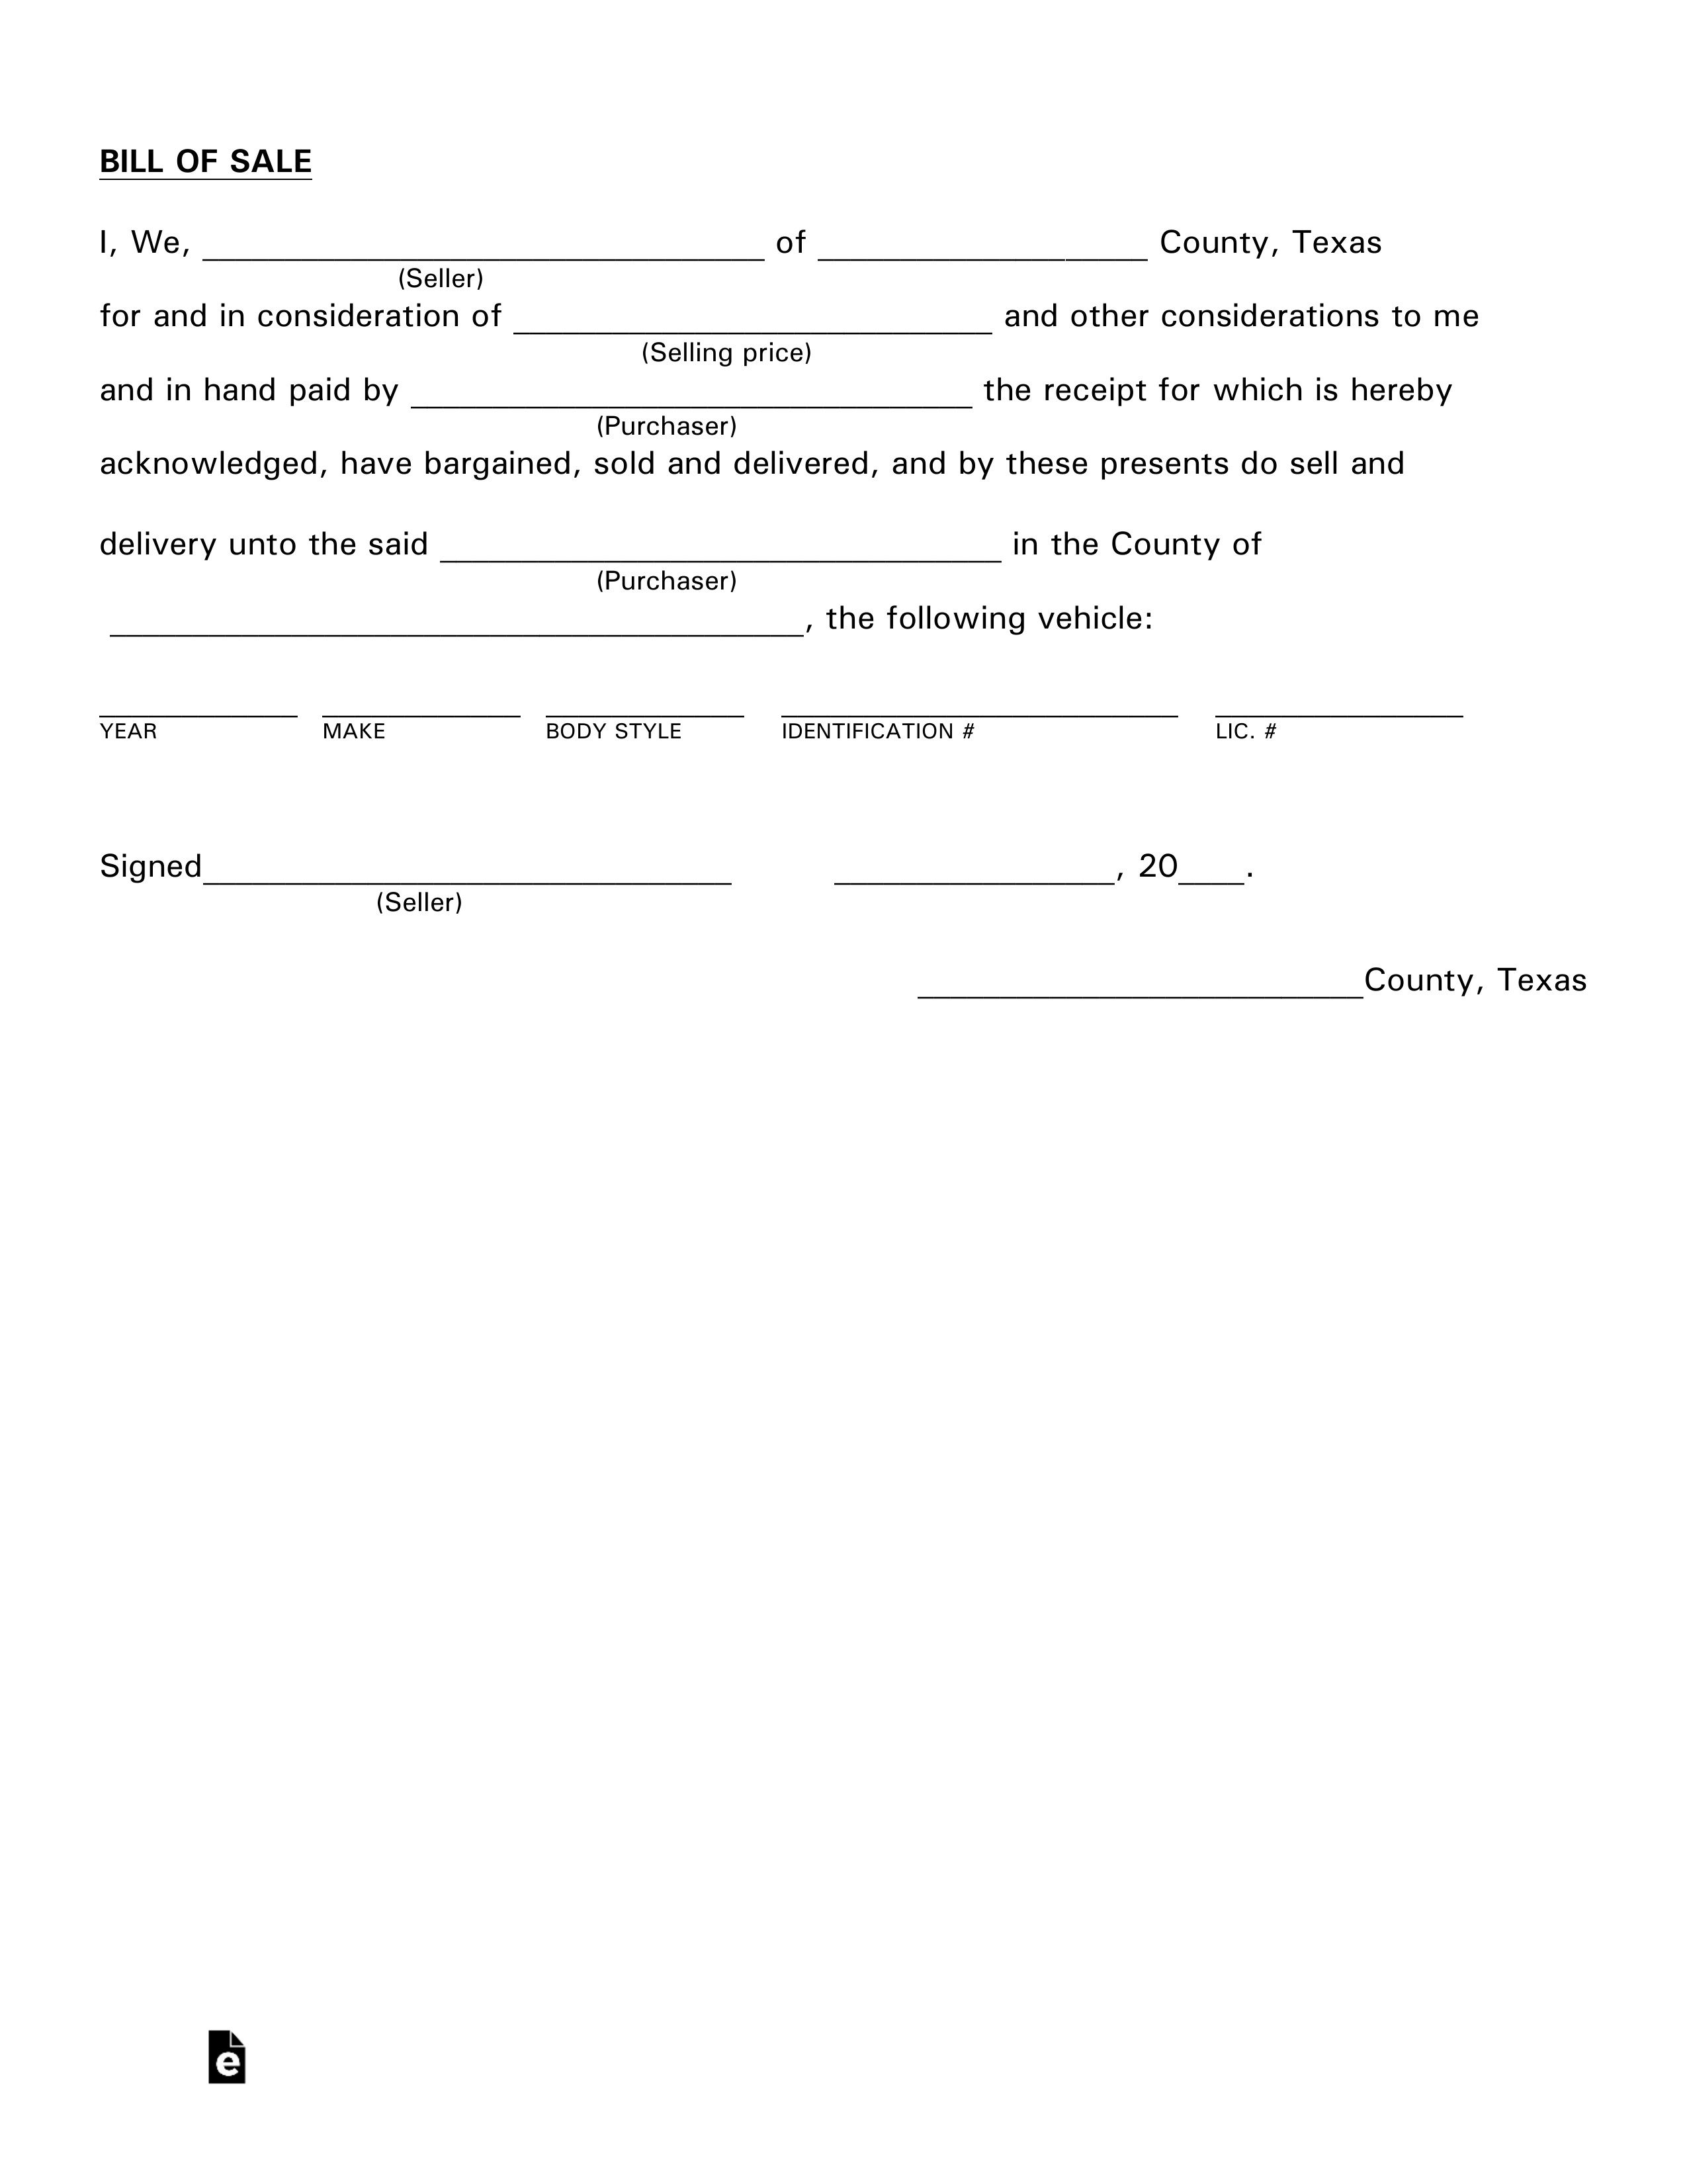 005 Marvelou Bill Of Sale Texa Template Photo  Motor Vehicle Form Free PrintableFull